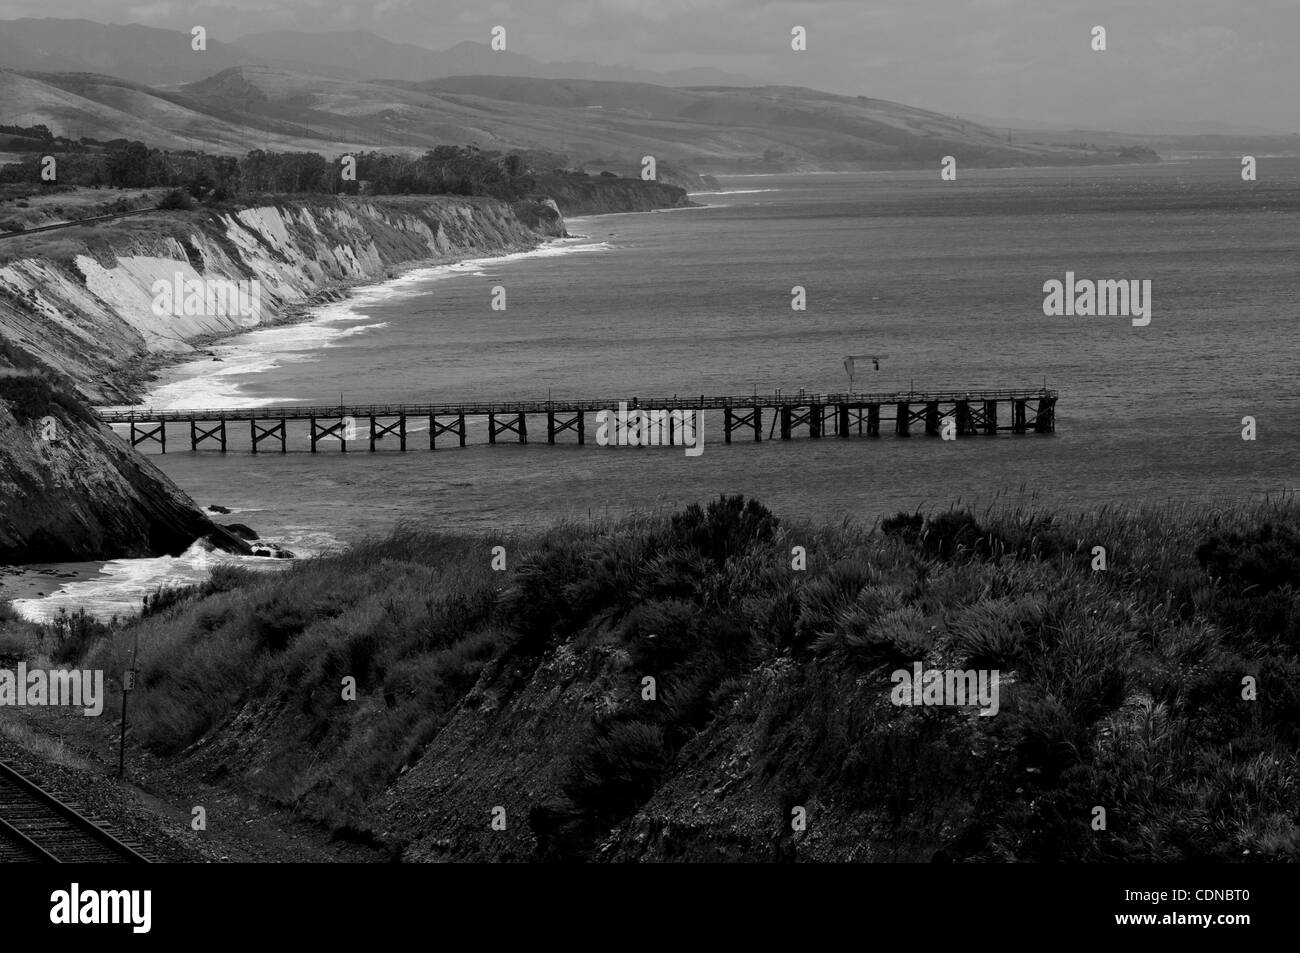 The Pier at Gaviota State Beach Park stretches out into the Pacific Ocean in Gaviota,CA. on May19, 2011.(Credit Stock Photo